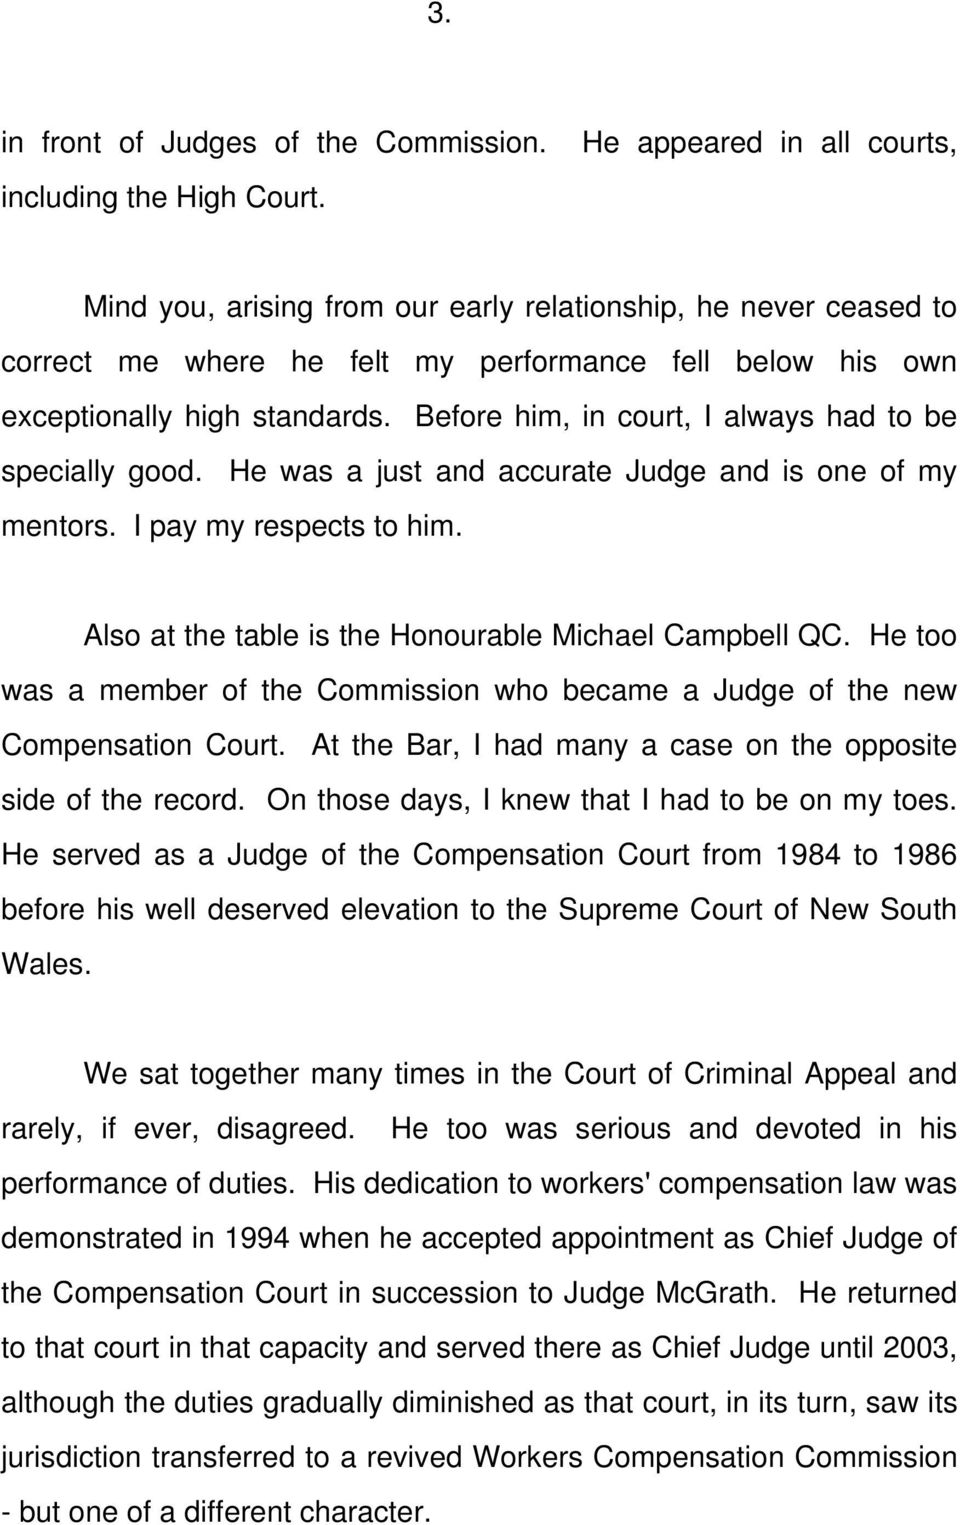 Before him, in court, I always had to be specially good. He was a just and accurate Judge and is one of my mentors. I pay my respects to him. Also at the table is the Honourable Michael Campbell QC.